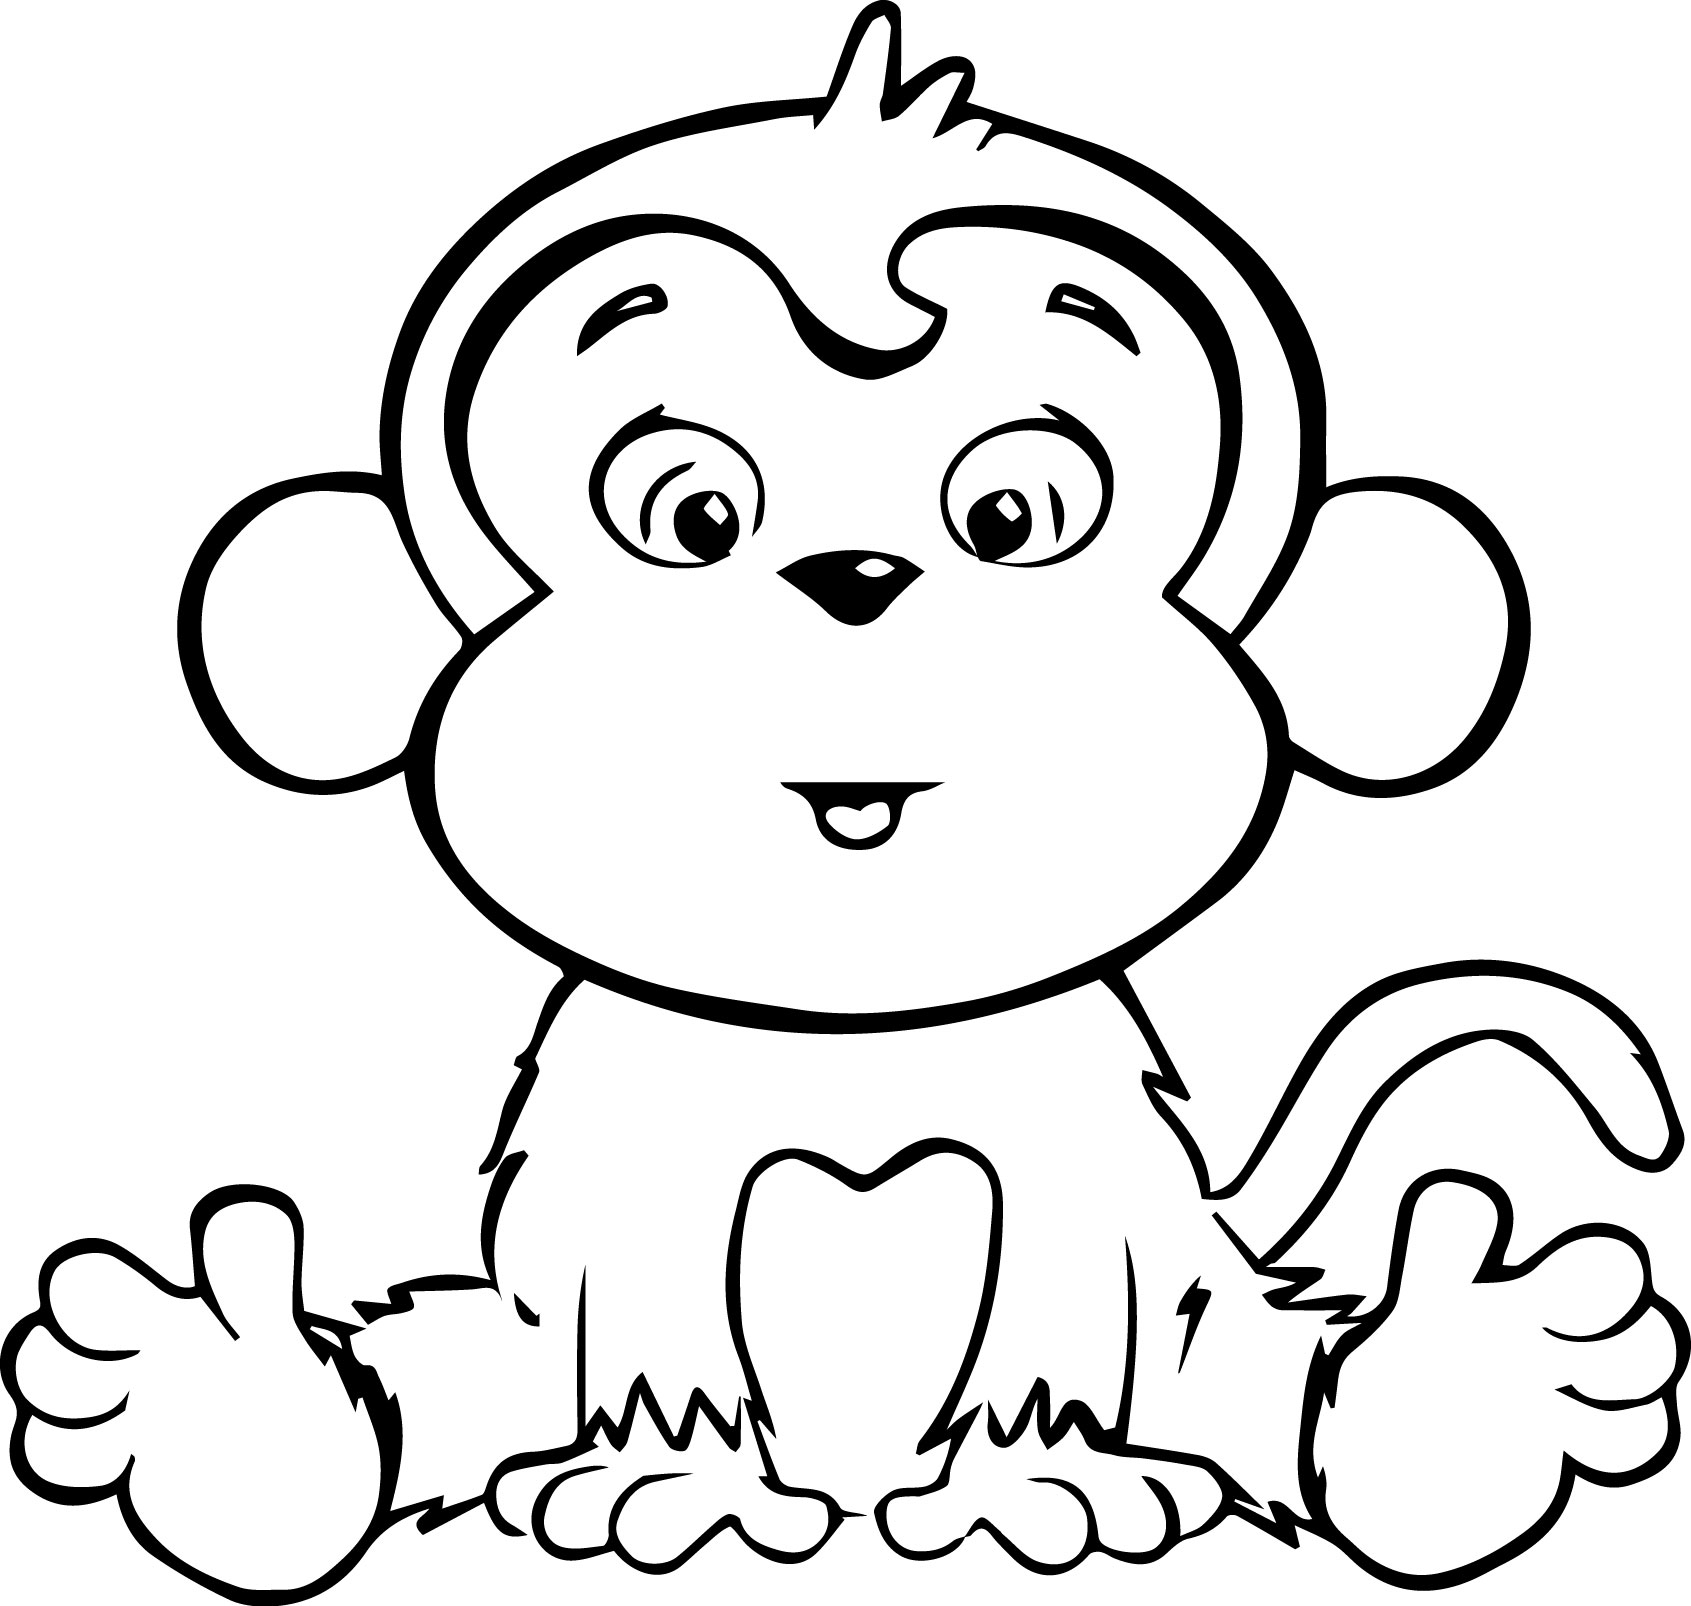 1691x1606 Awesome Cartoon Monkey Coloring Pages Gallery Free Best Of Page